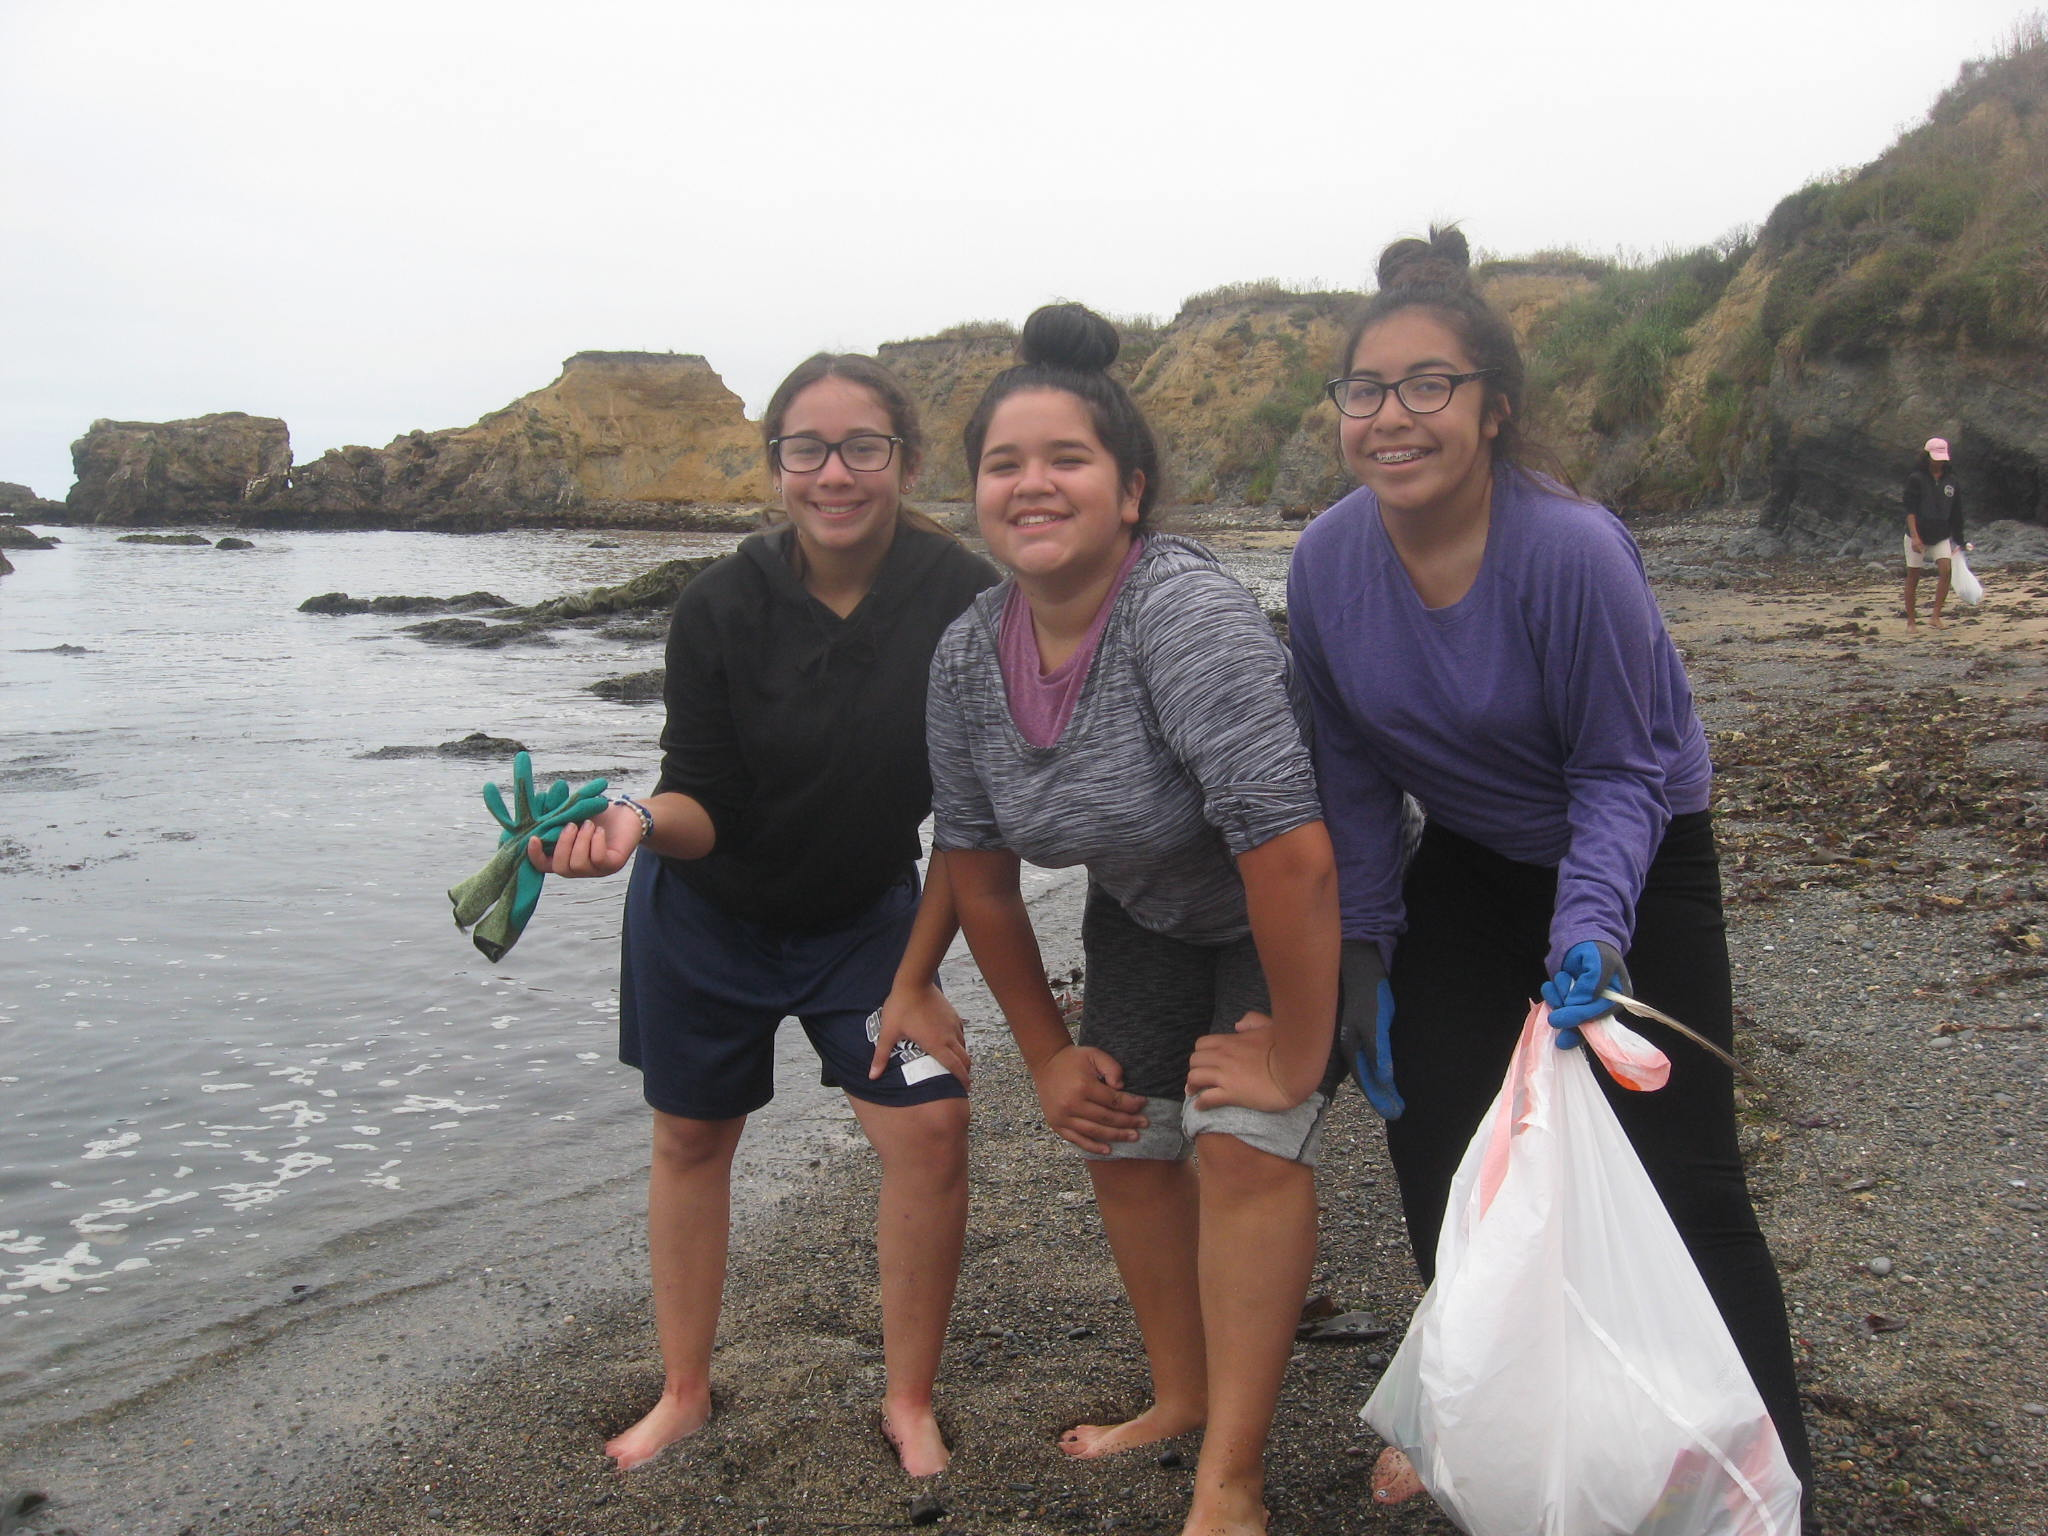 Campers removed trash from one mile of beach during a coastal cleanup day. Photo courtesy Jay Scherf.